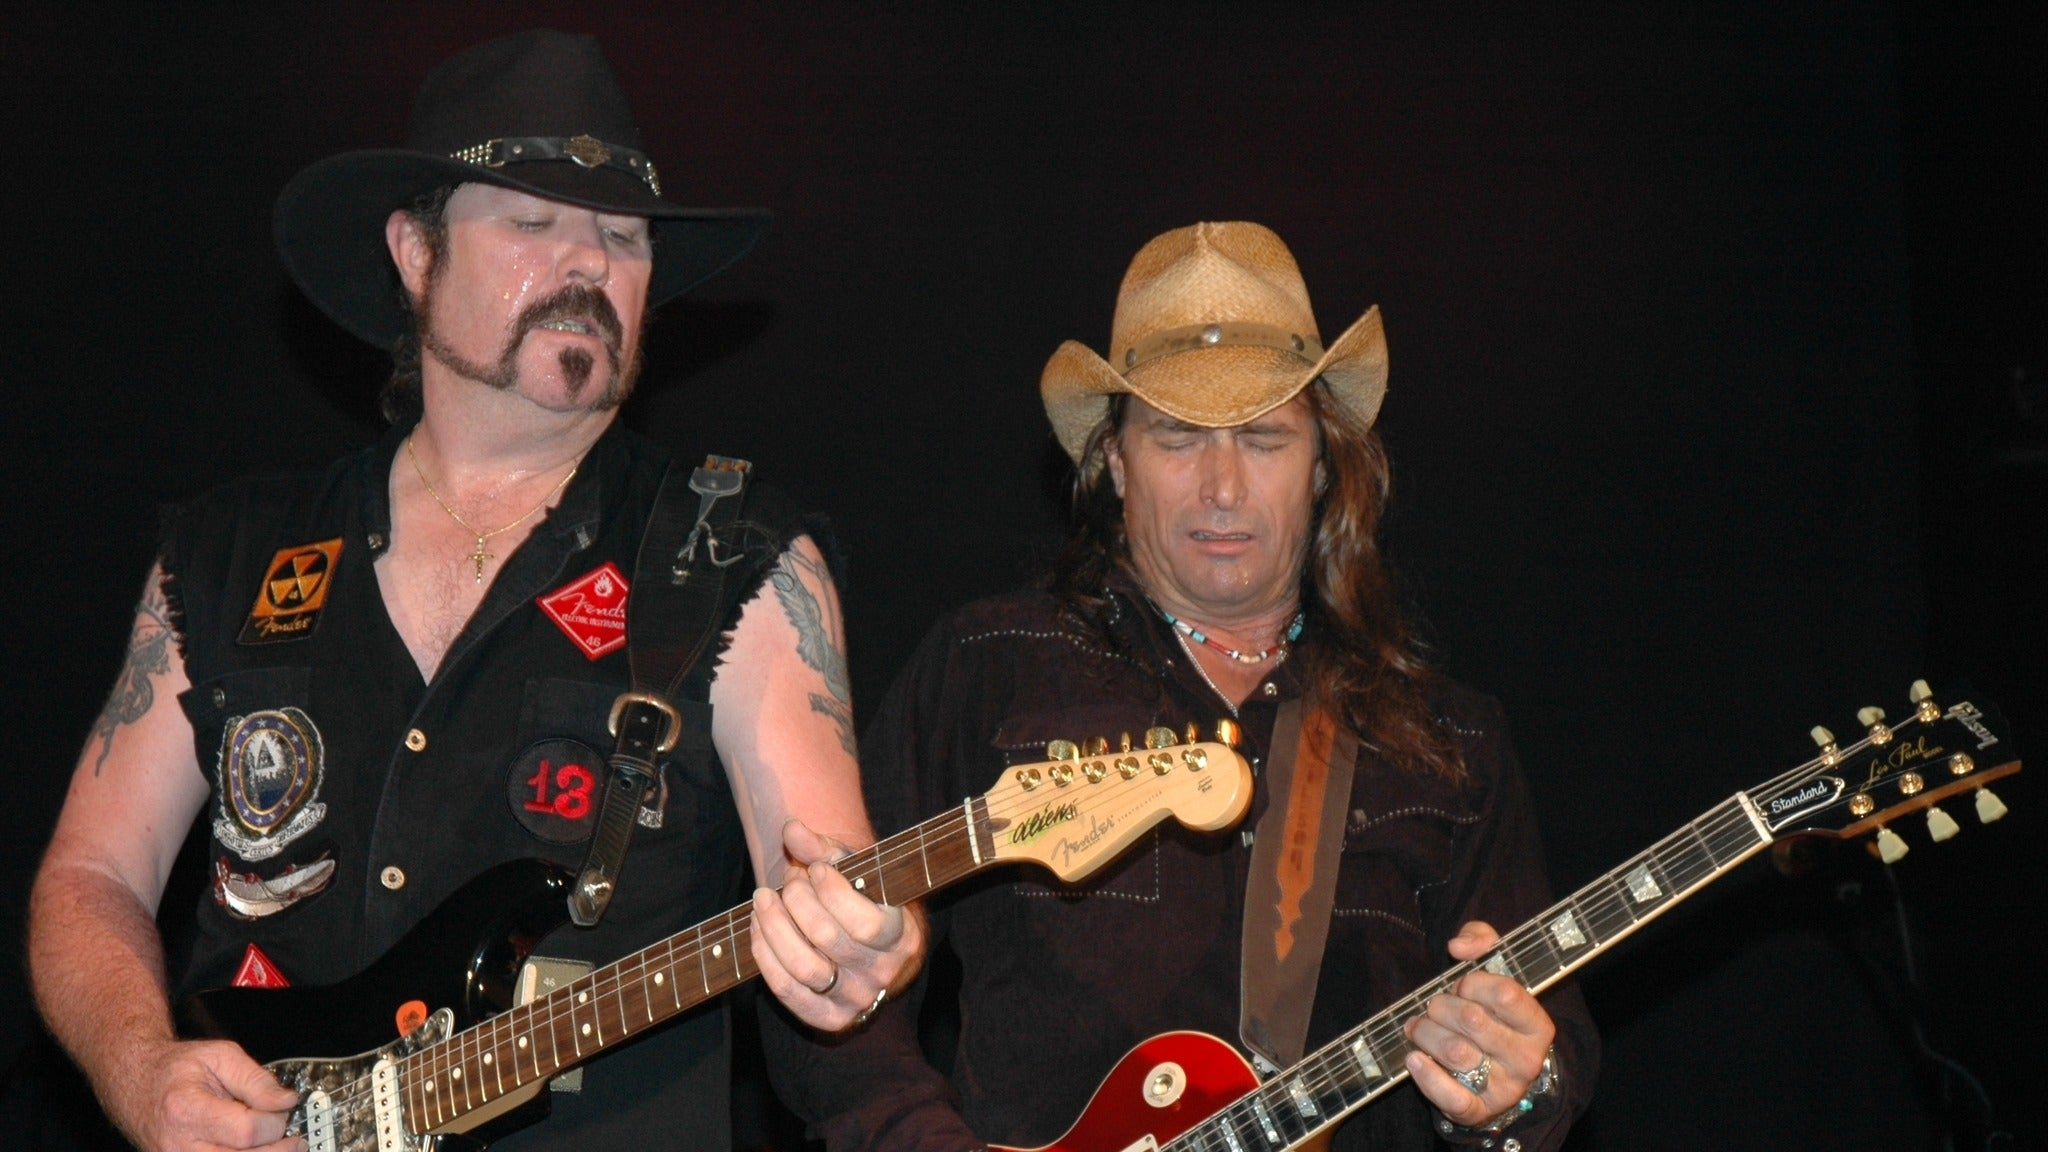 The Outlaws at King Performing Arts Center